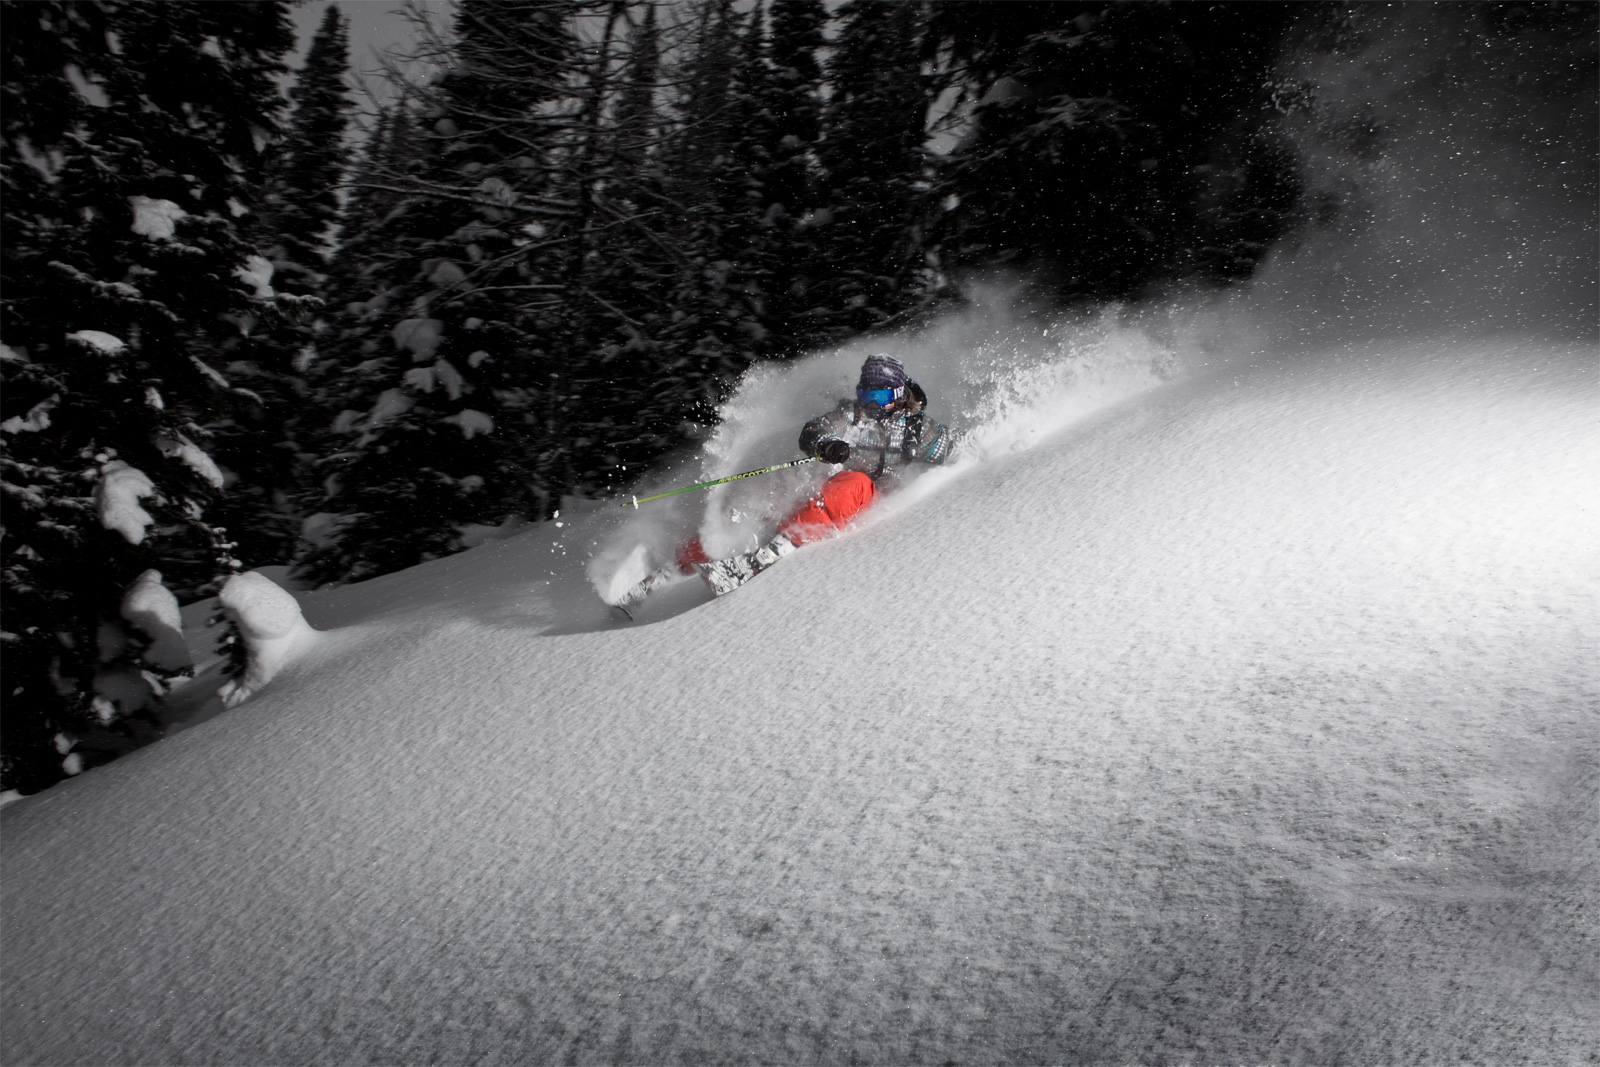 Skiing Sport Wallpaper Iphone: Skiing Wallpaper And Background Image